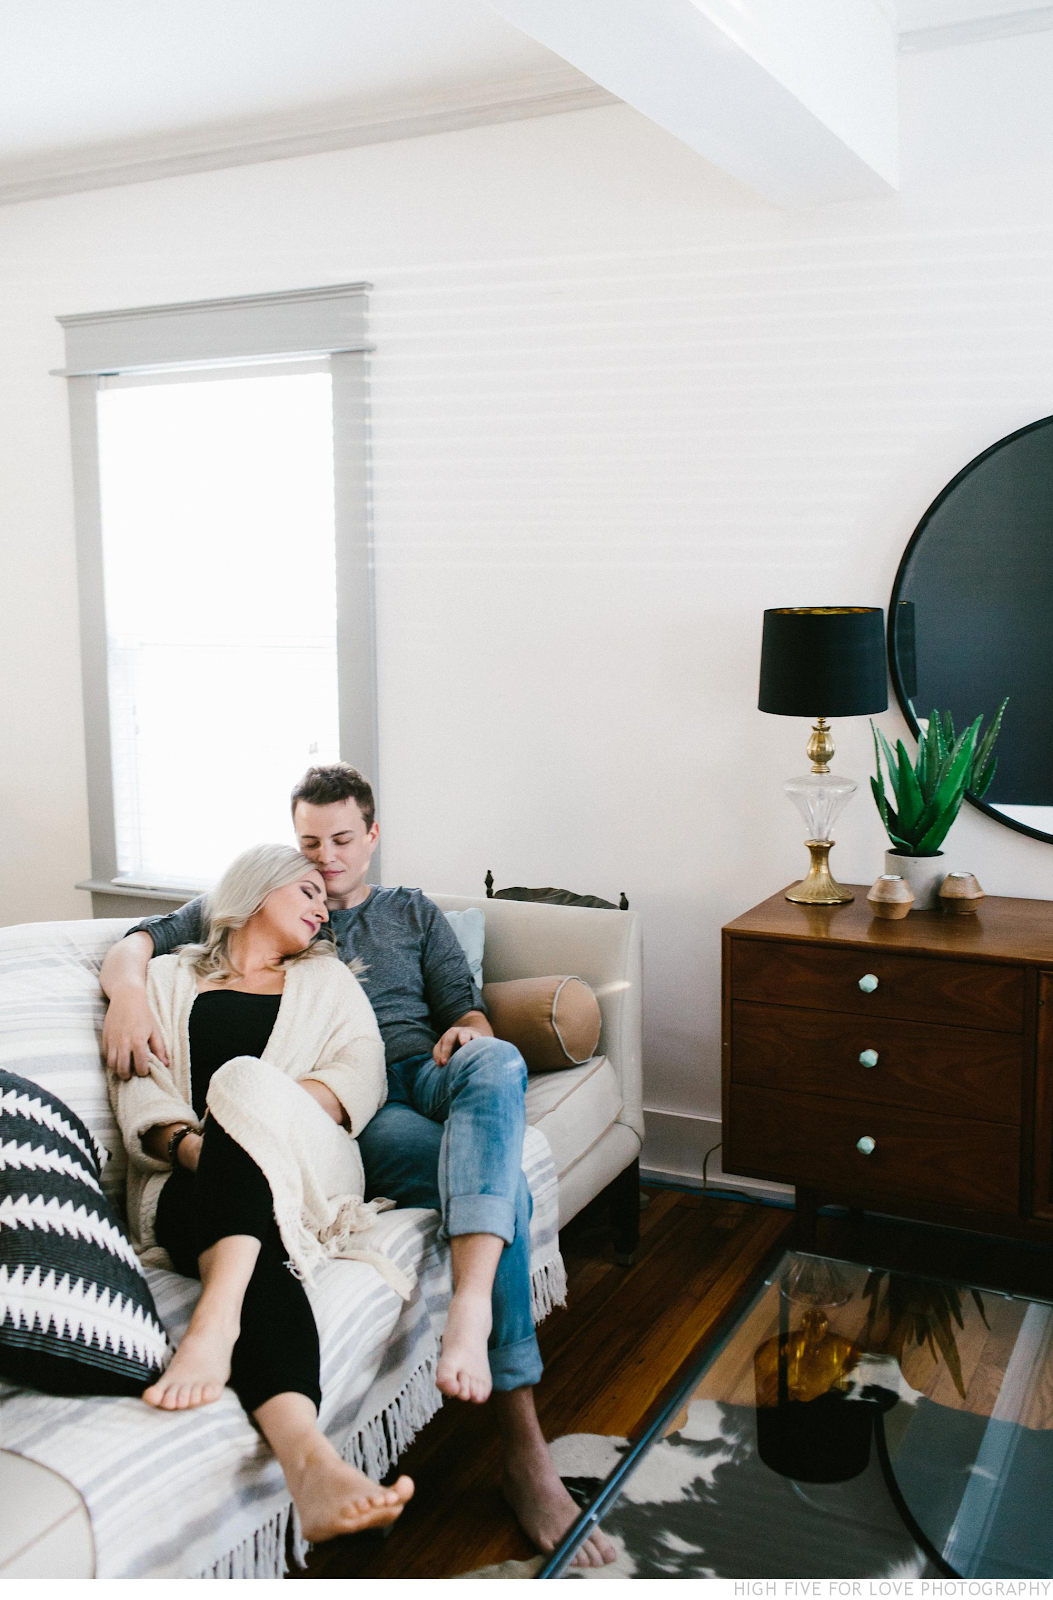 7 Intimate & Cozy Home Engagement Photos engagement shoot ...